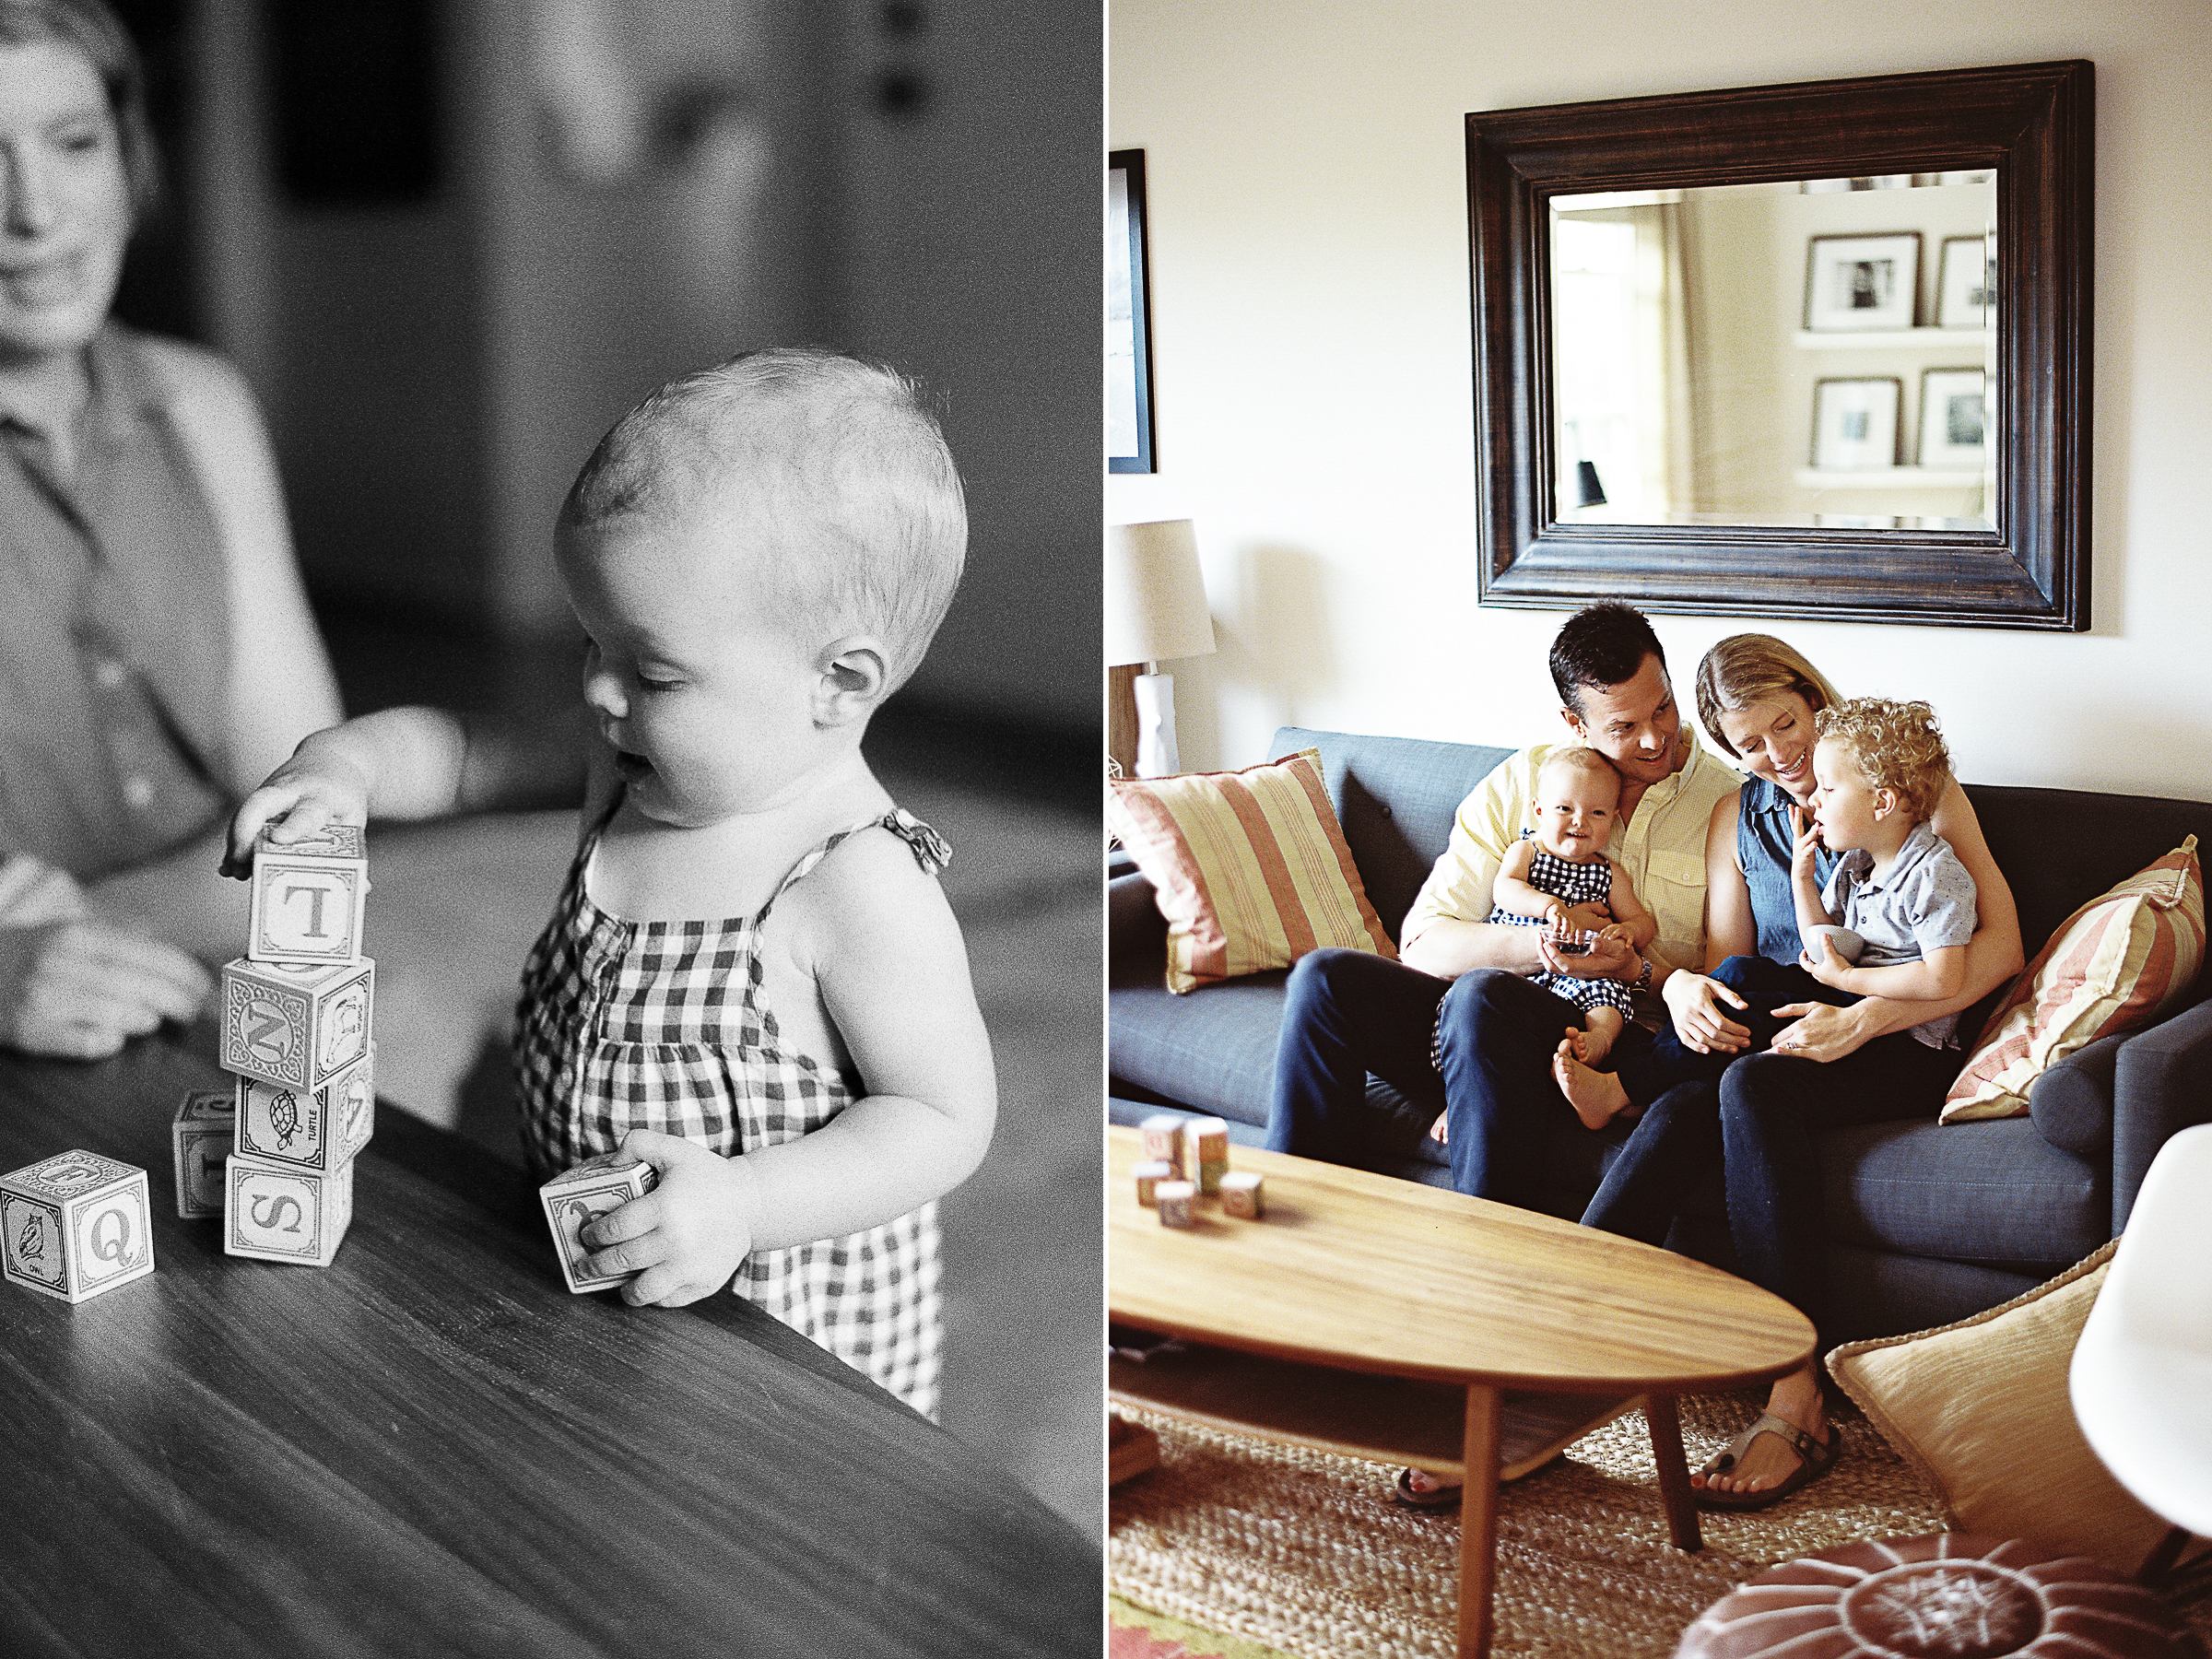 Meghan Mehan Photography - San Francisco Newborn and Family Photographer 037.jpg